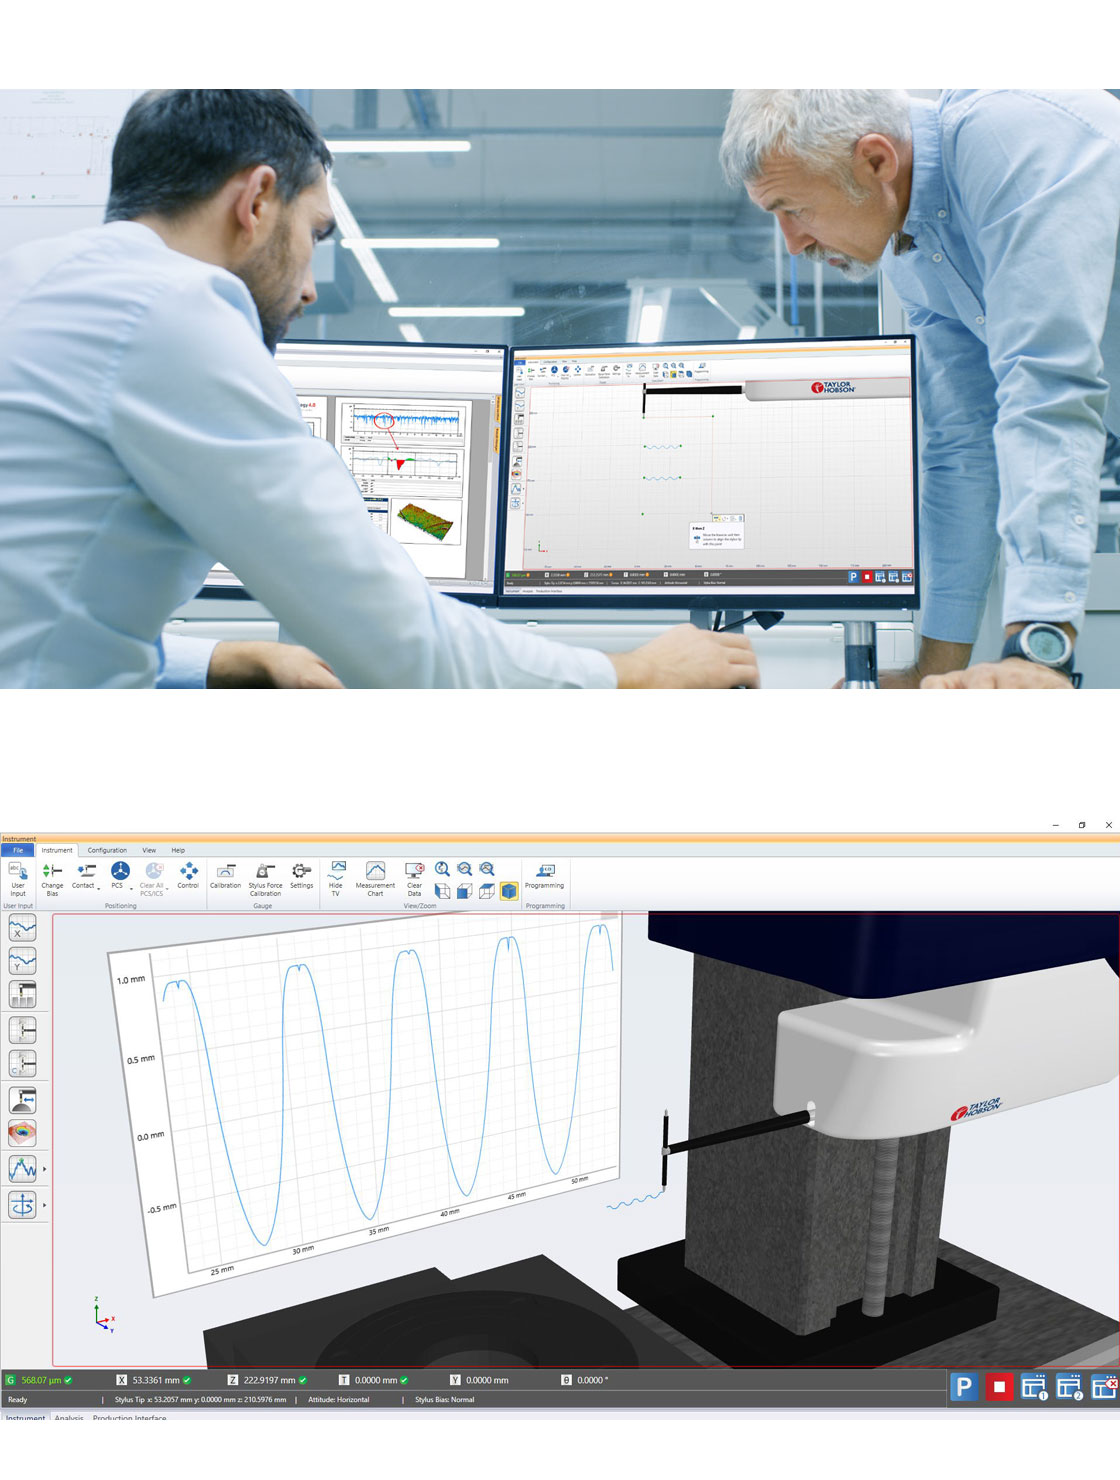 Powerful, fast diameter, angle, surface, Contour inspection/measurement instrument